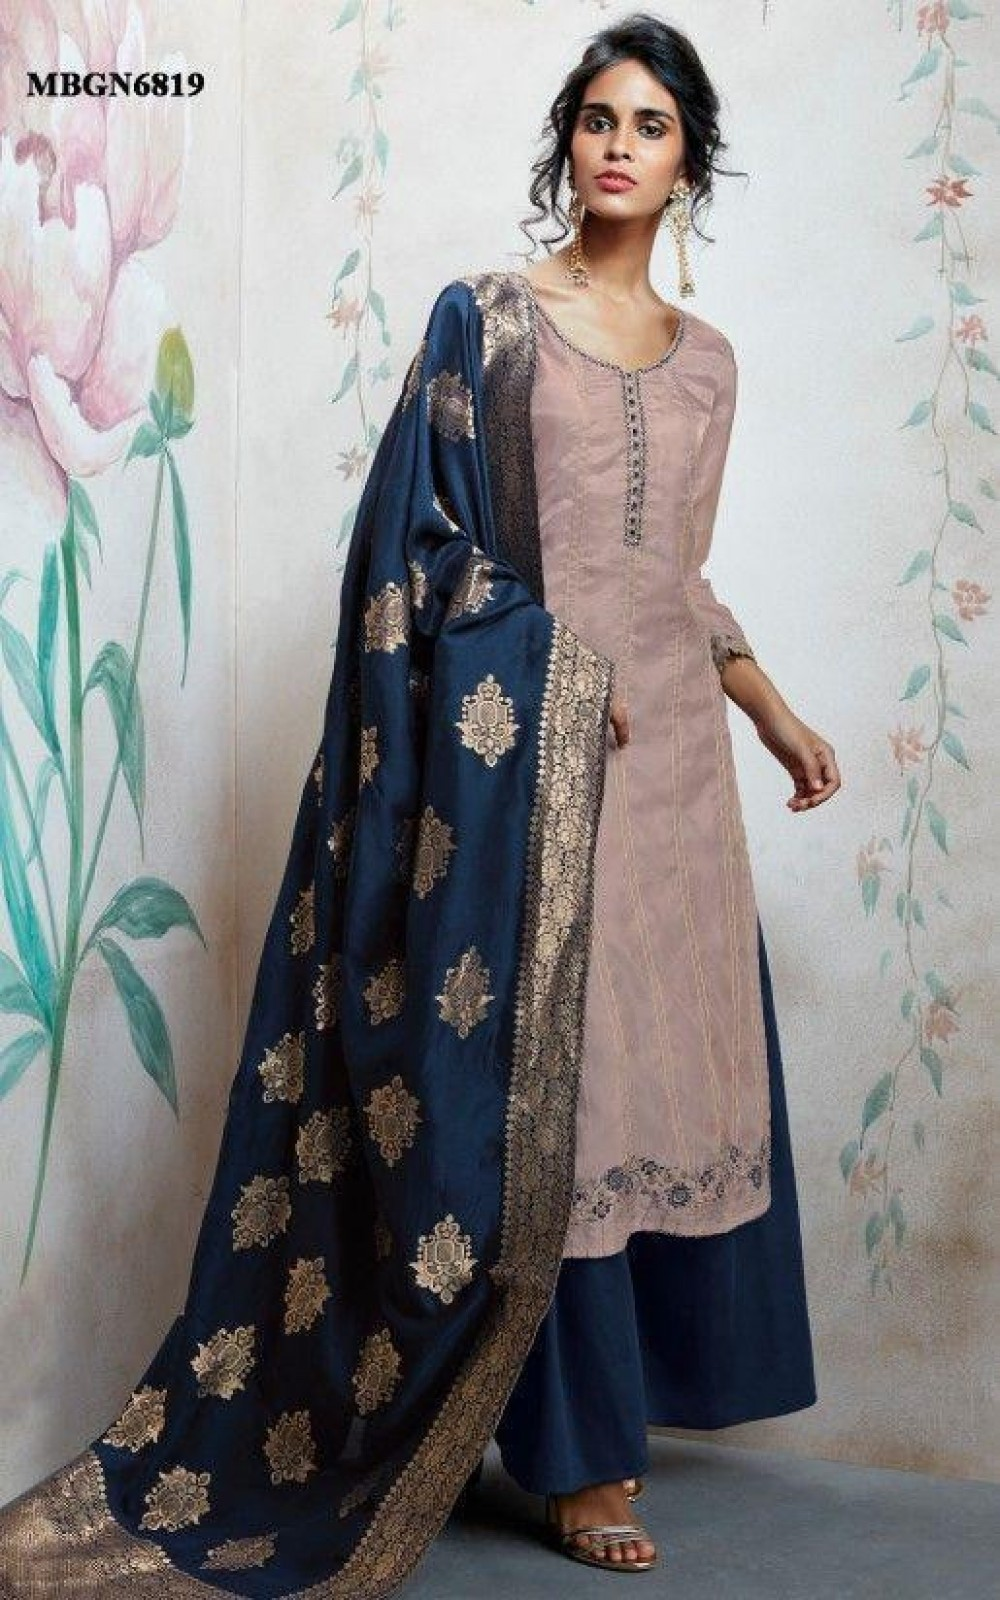 Glowing neavy blue Colour Embroidered anarkali suit with jaqard dupatta